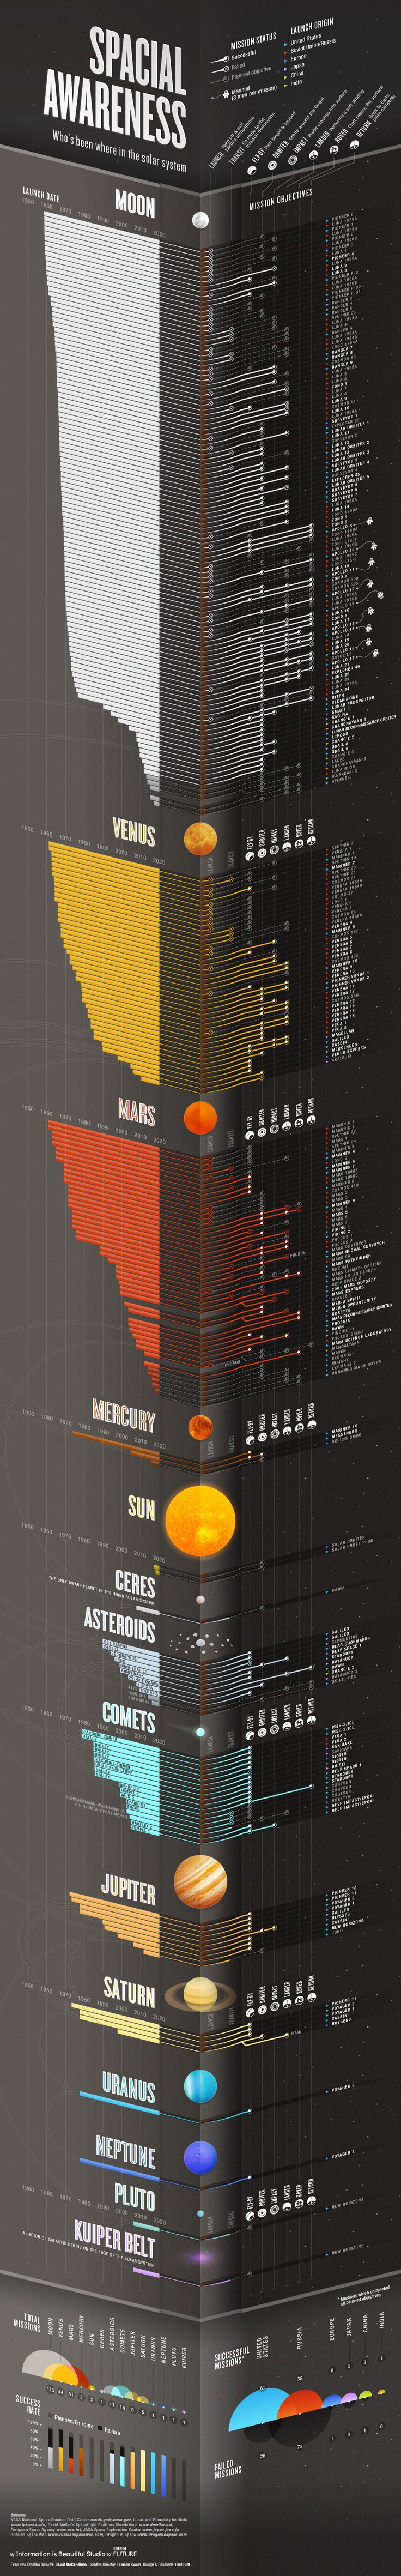 Where have we been in space? An infographic.